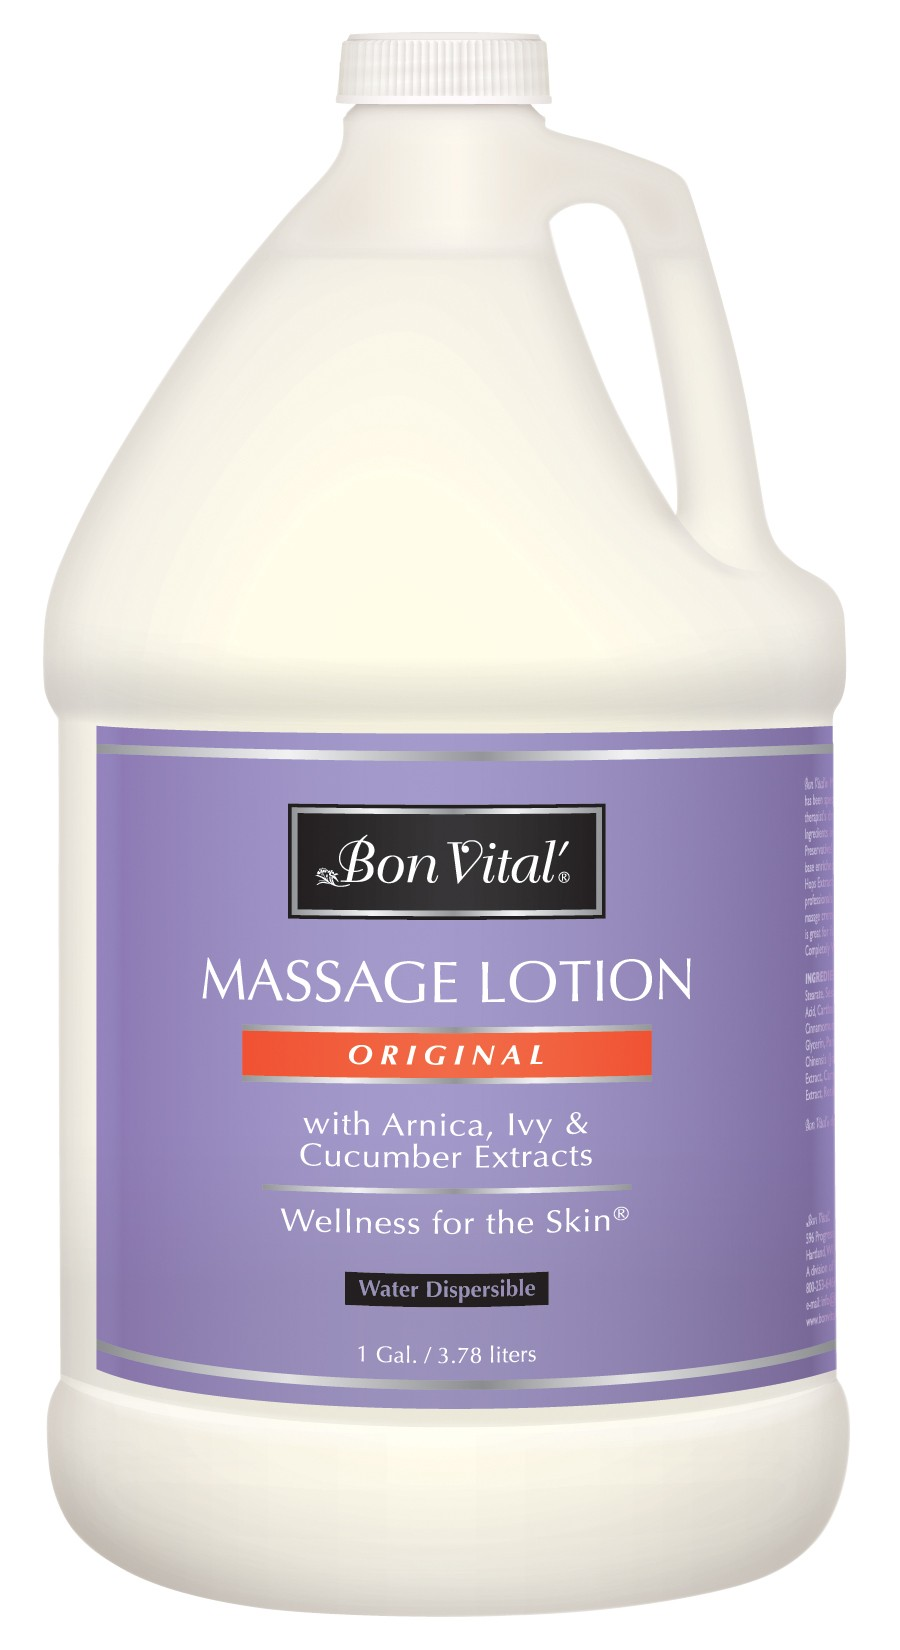 Bon Vital' Original Massage Lotion - 1 gal